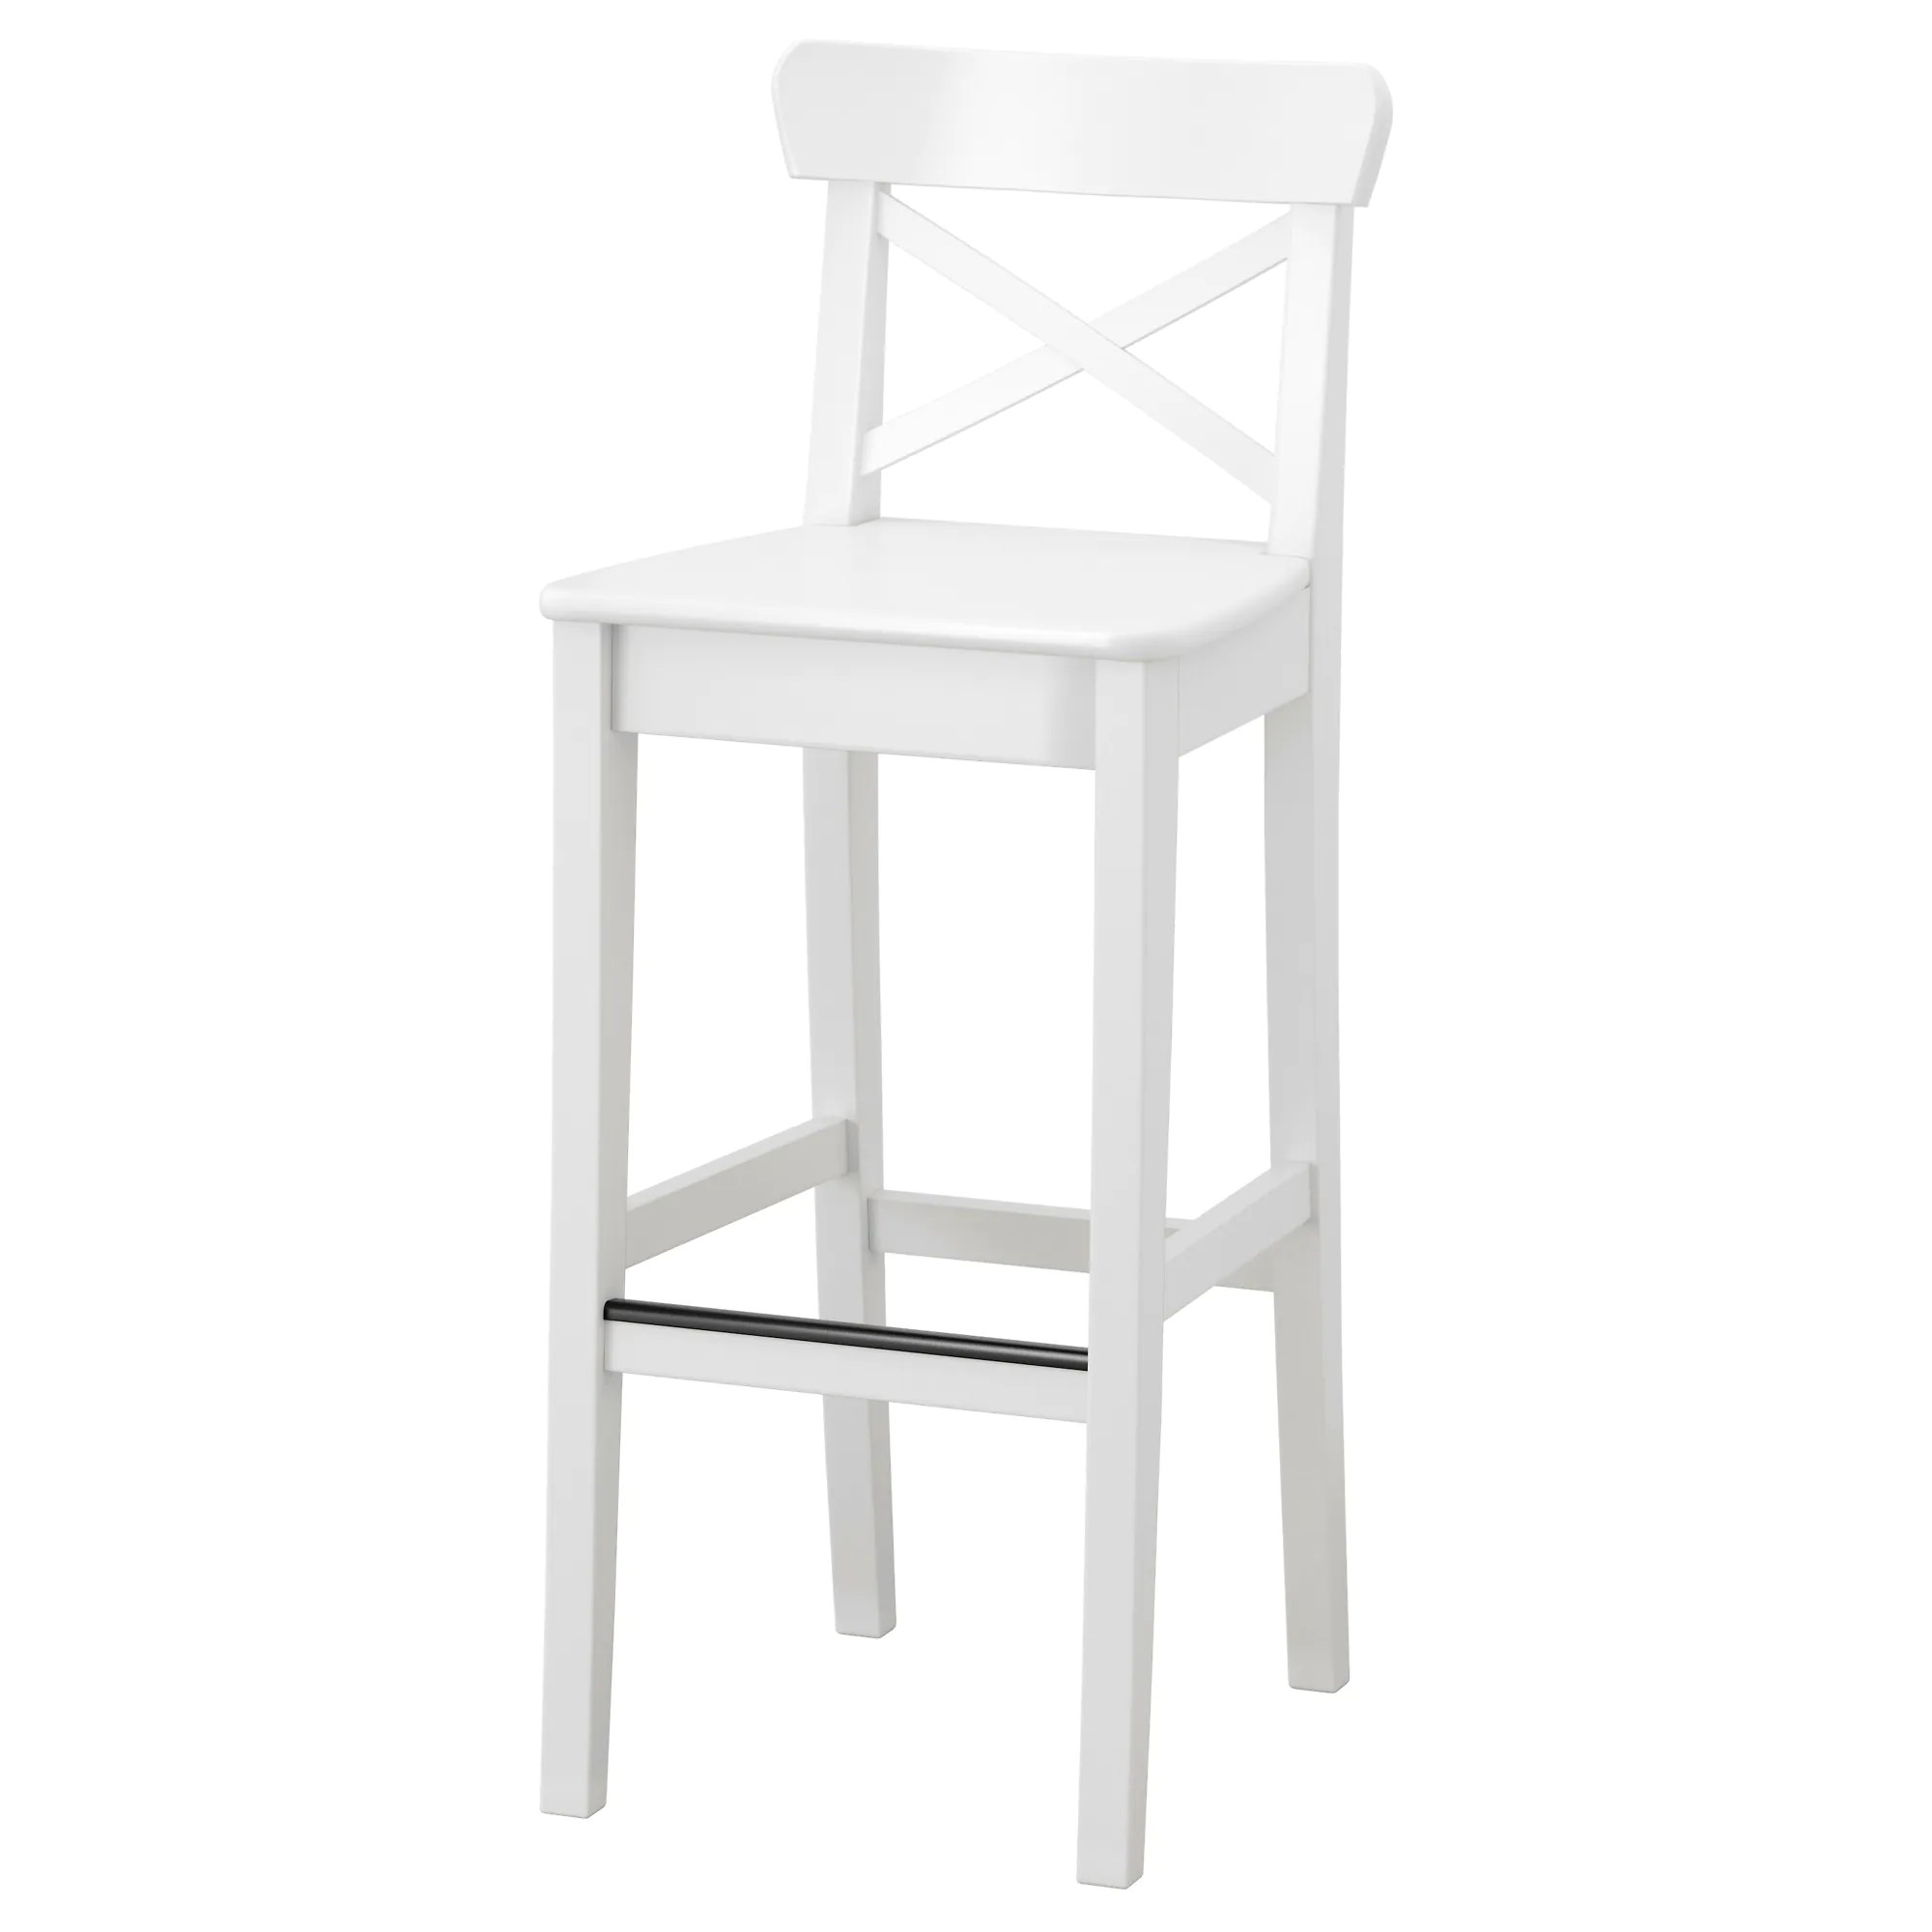 Stool Chair Ingolf Bar Stool With Backrest White